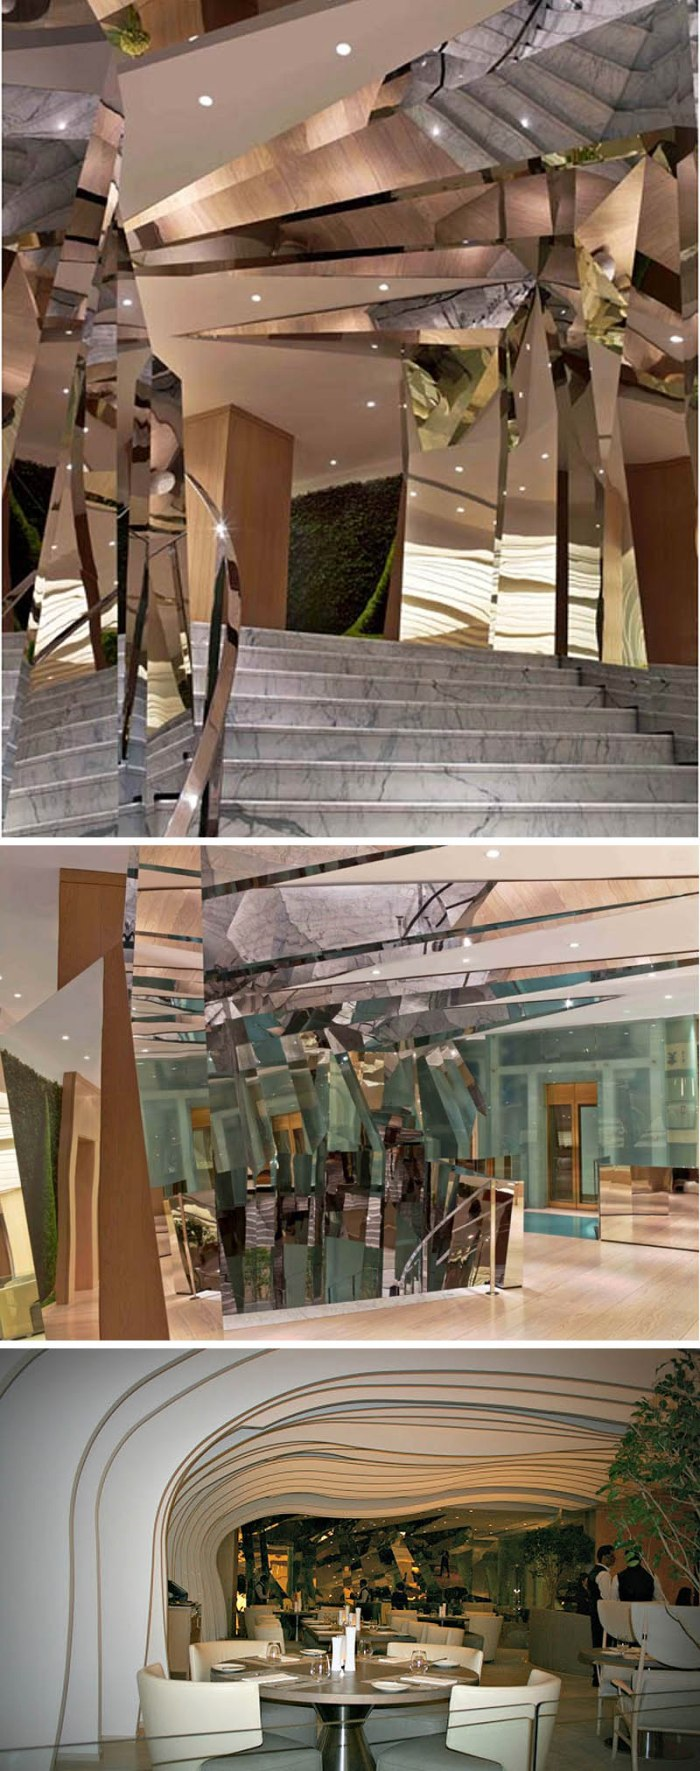 Veranda Cafe, Tihany Design, Adam Tihany, Kuwait City, Harvey Nichols, The Avenues Mall, contemporary architecture, restaurant design